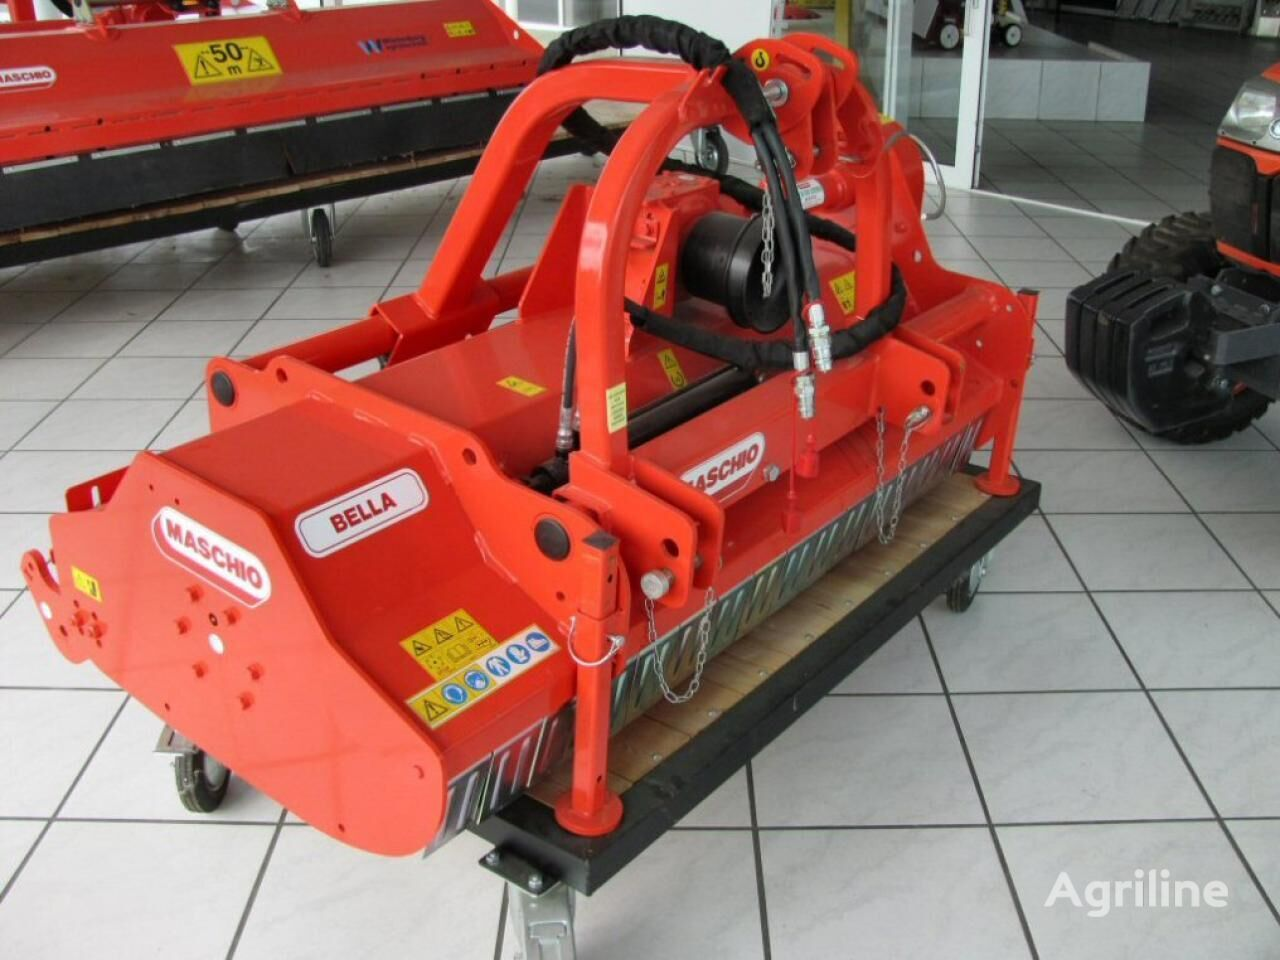 new MASCHIO Bella 1550 mulcher